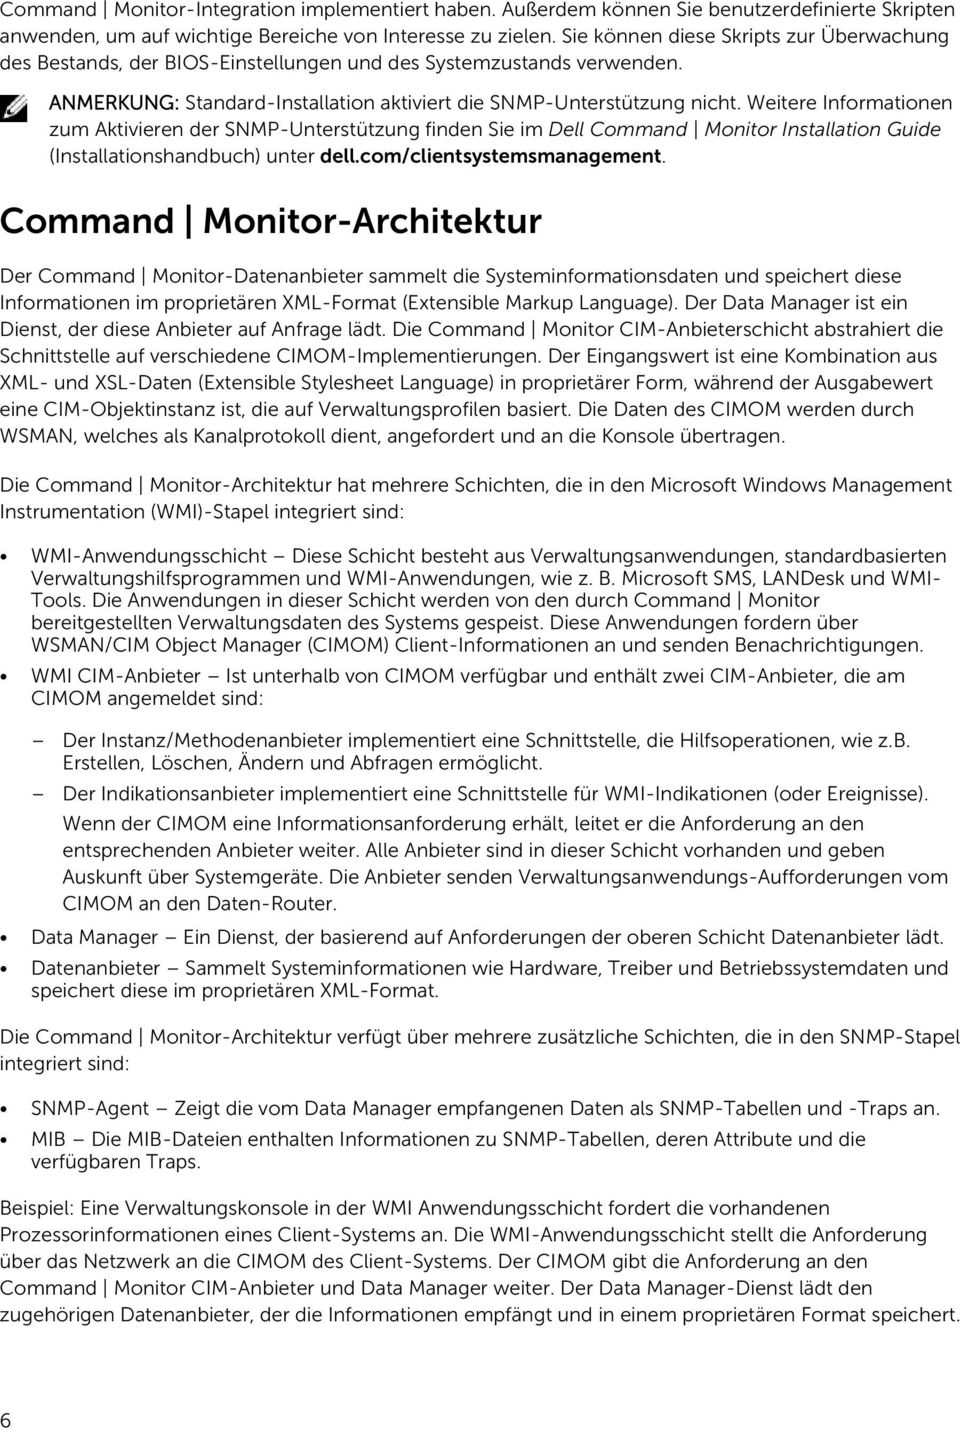 Weitere Informationen zum Aktivieren der SNMP-Unterstützung finden Sie im Dell Command Monitor Installation Guide (Installationshandbuch) unter dell.com/clientsystemsmanagement.